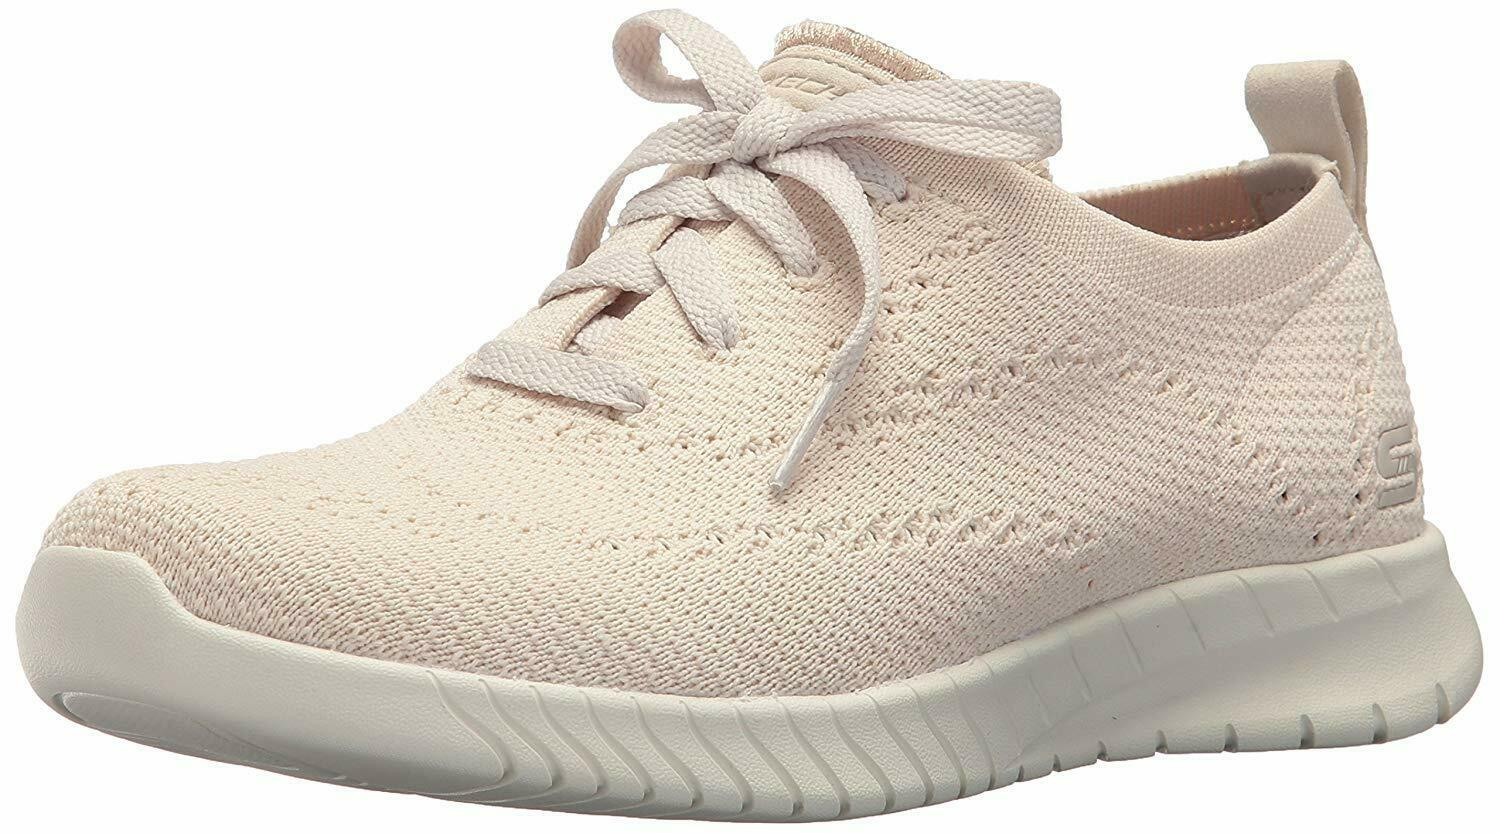 NEW Skechers Womens Natural Mesh Wave Lite-Pretty Philosophy Memory Foam Shoes 9